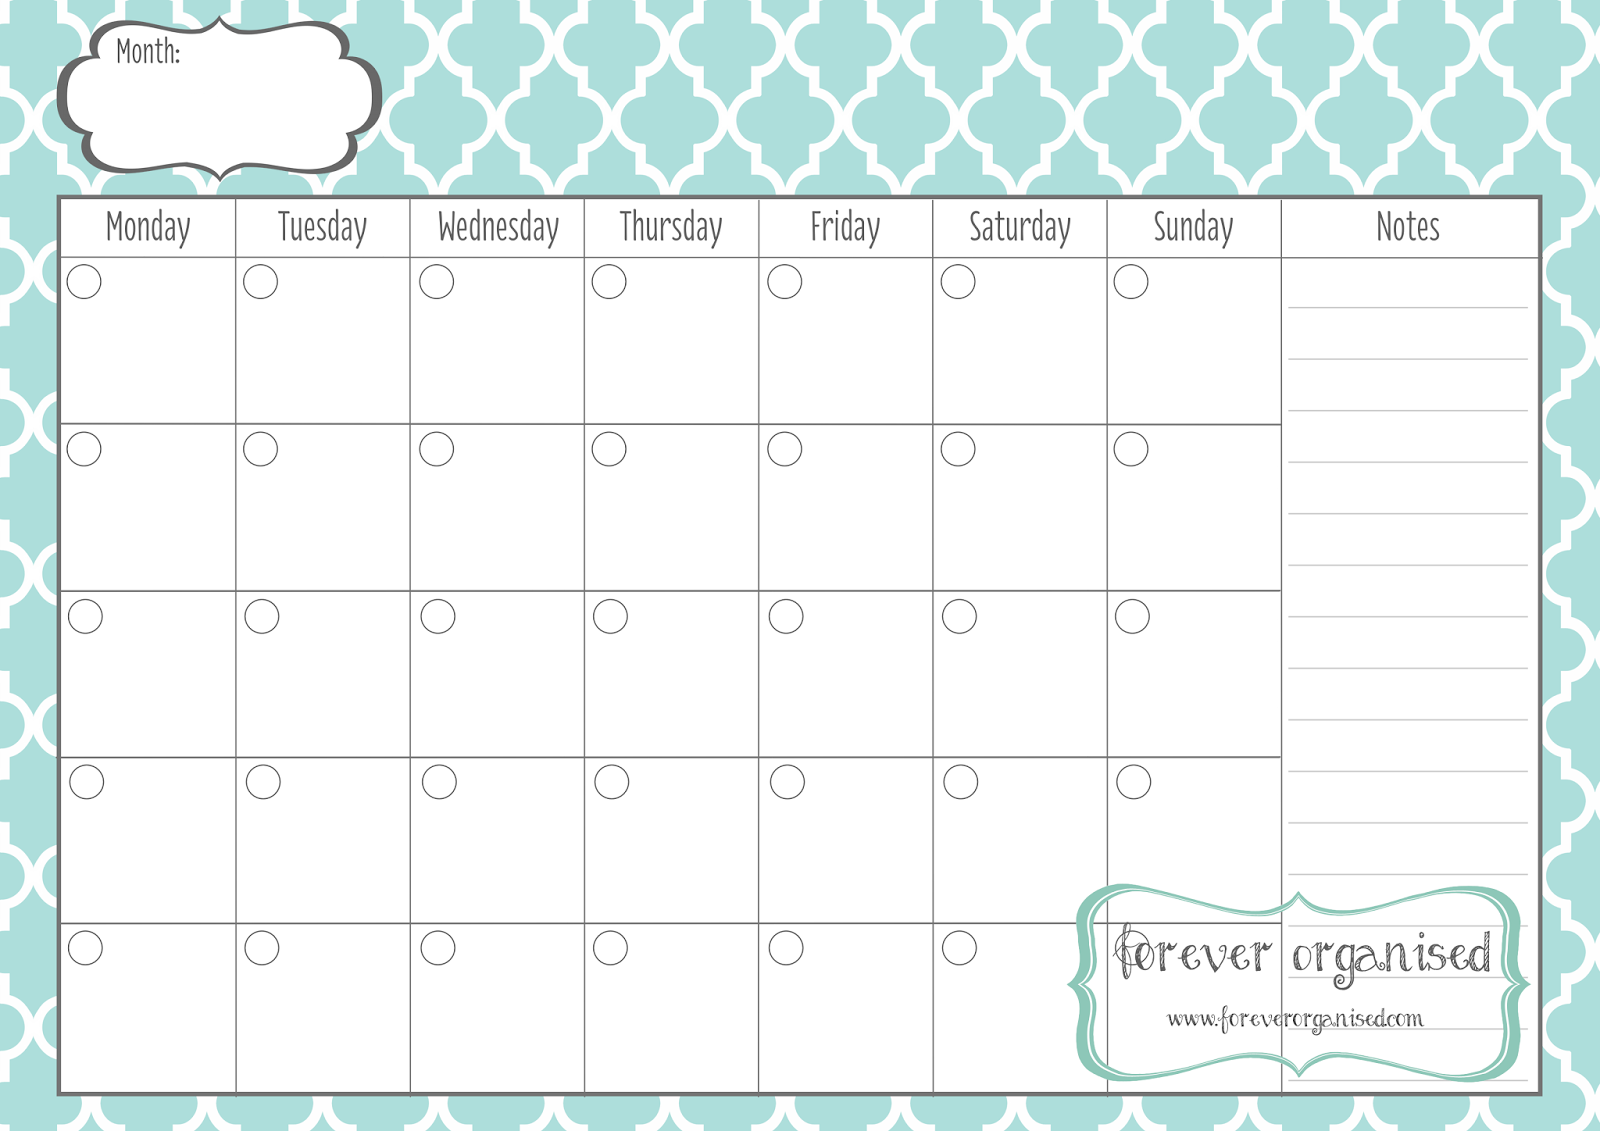 Monthly Calendar To Print | yearly calendar printable